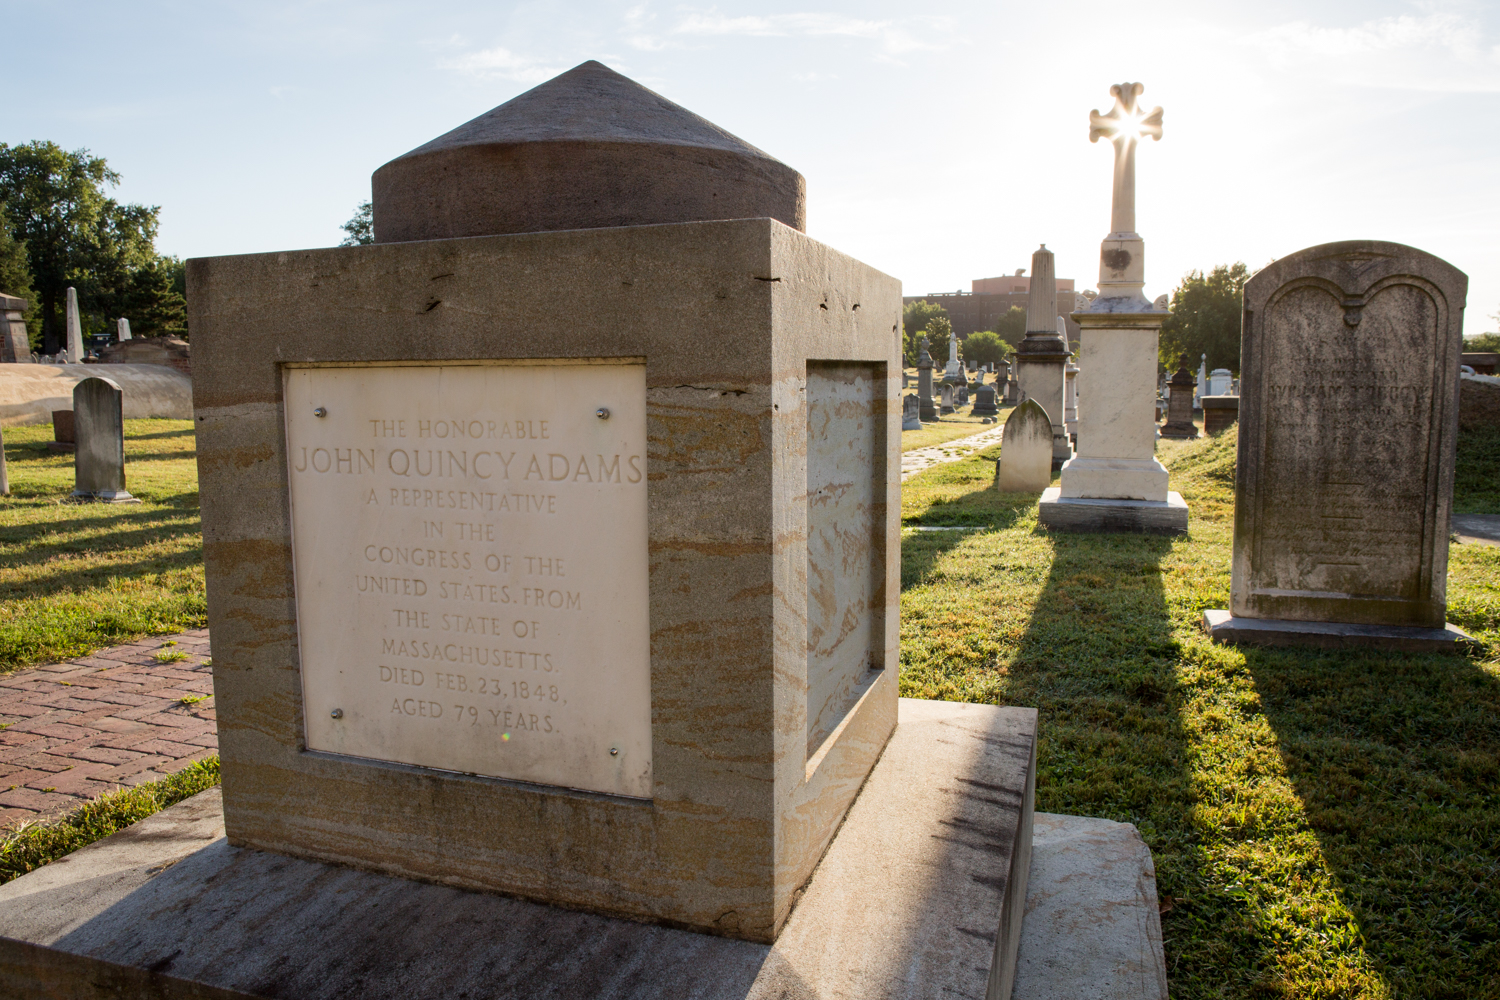 A cenotaph for John Quincy Adams is located in the Congressional Cemetery in Washington, D.C.